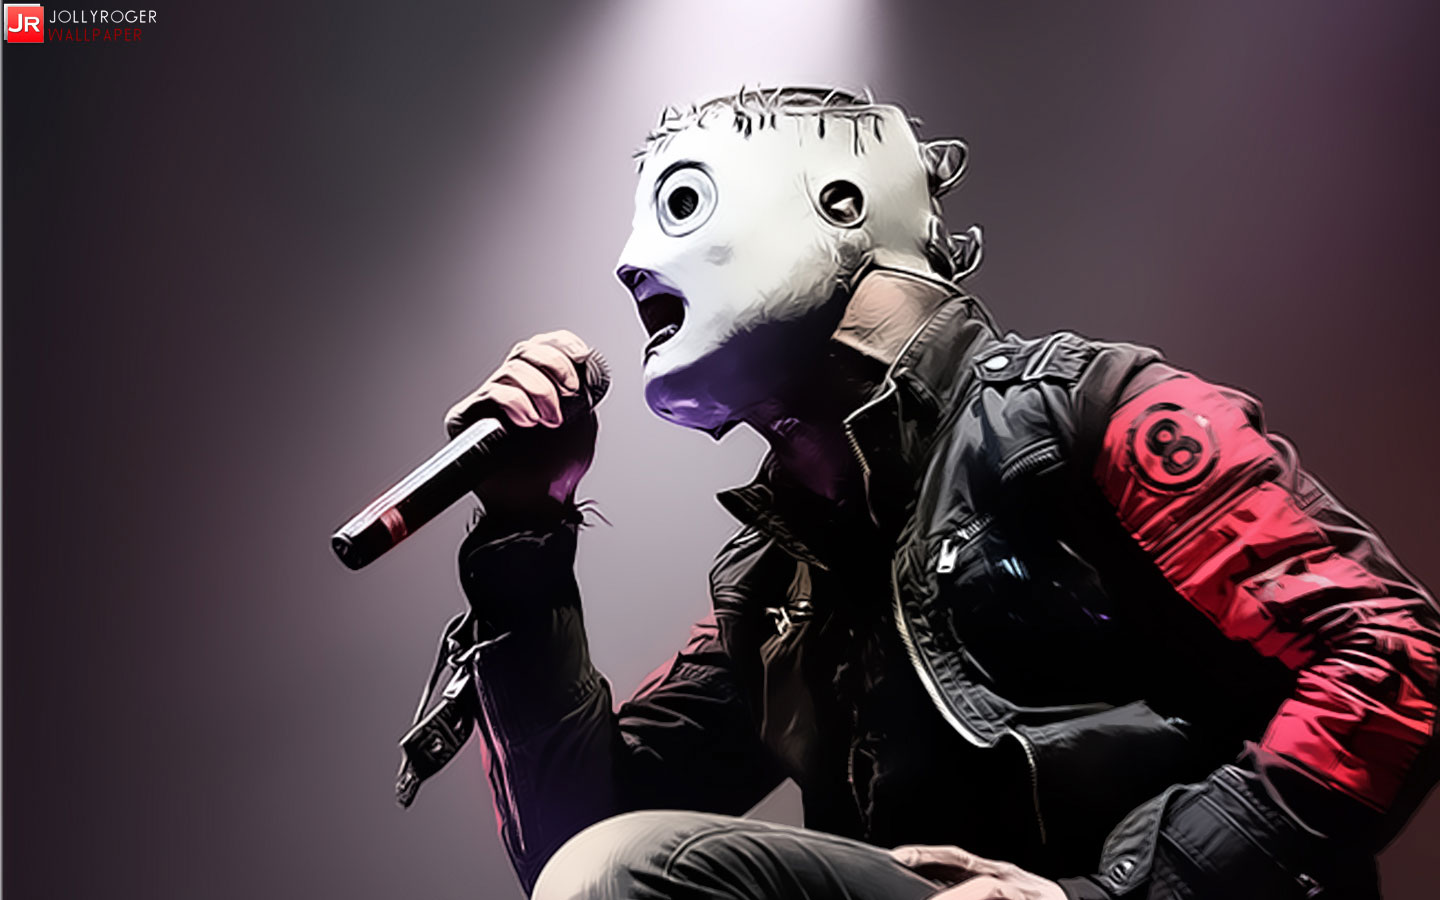 Corey Taylor wallpaper 1440x900